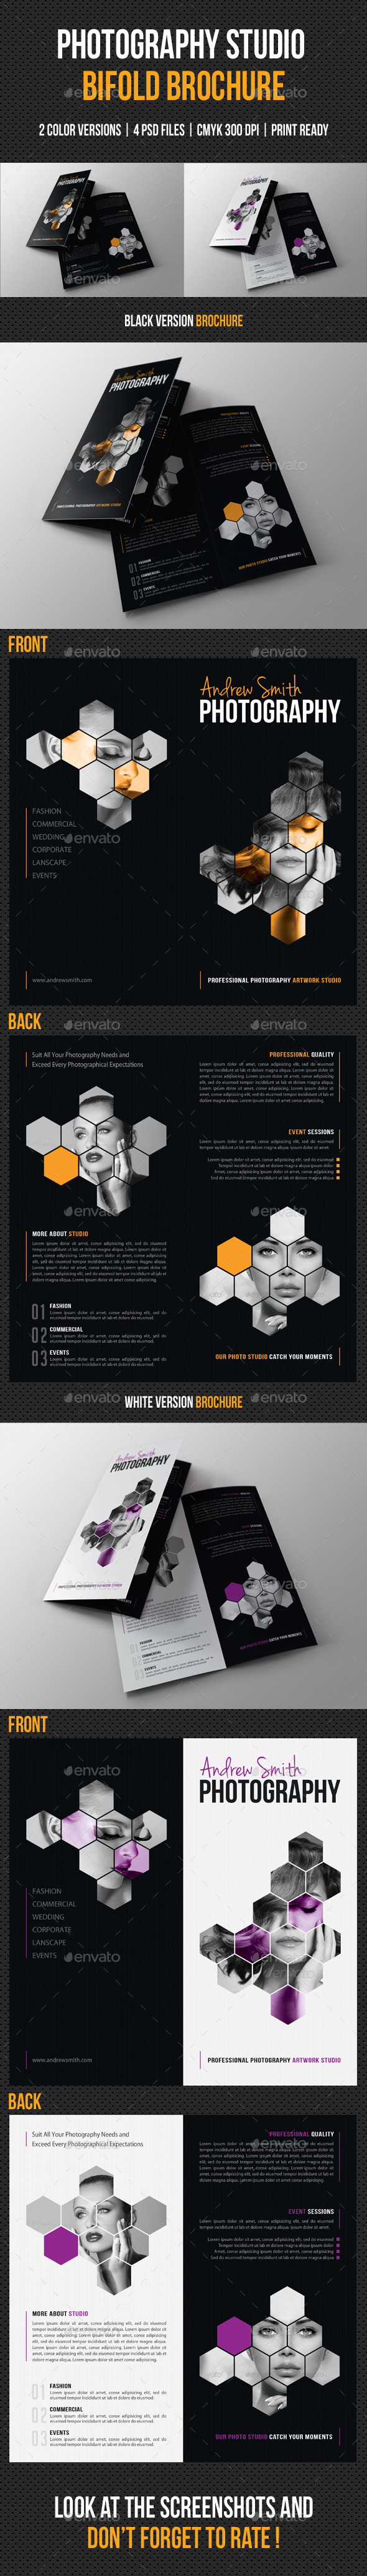 GraphicRiver Photography Studio Bifold Brochure 8914017